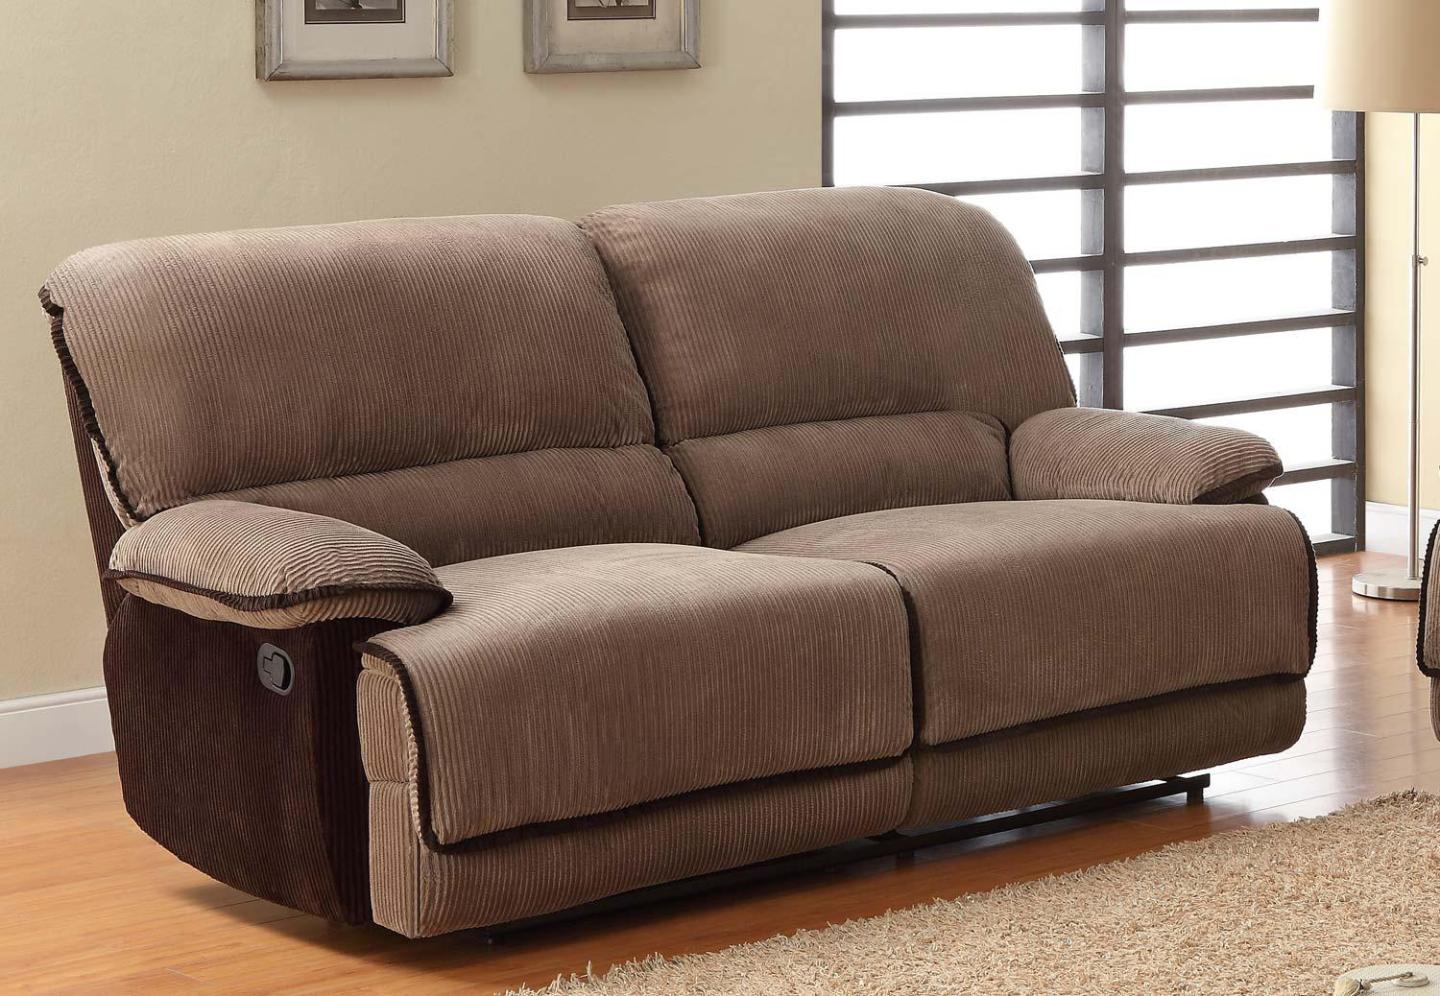 Image of: Dual Recliner Couch